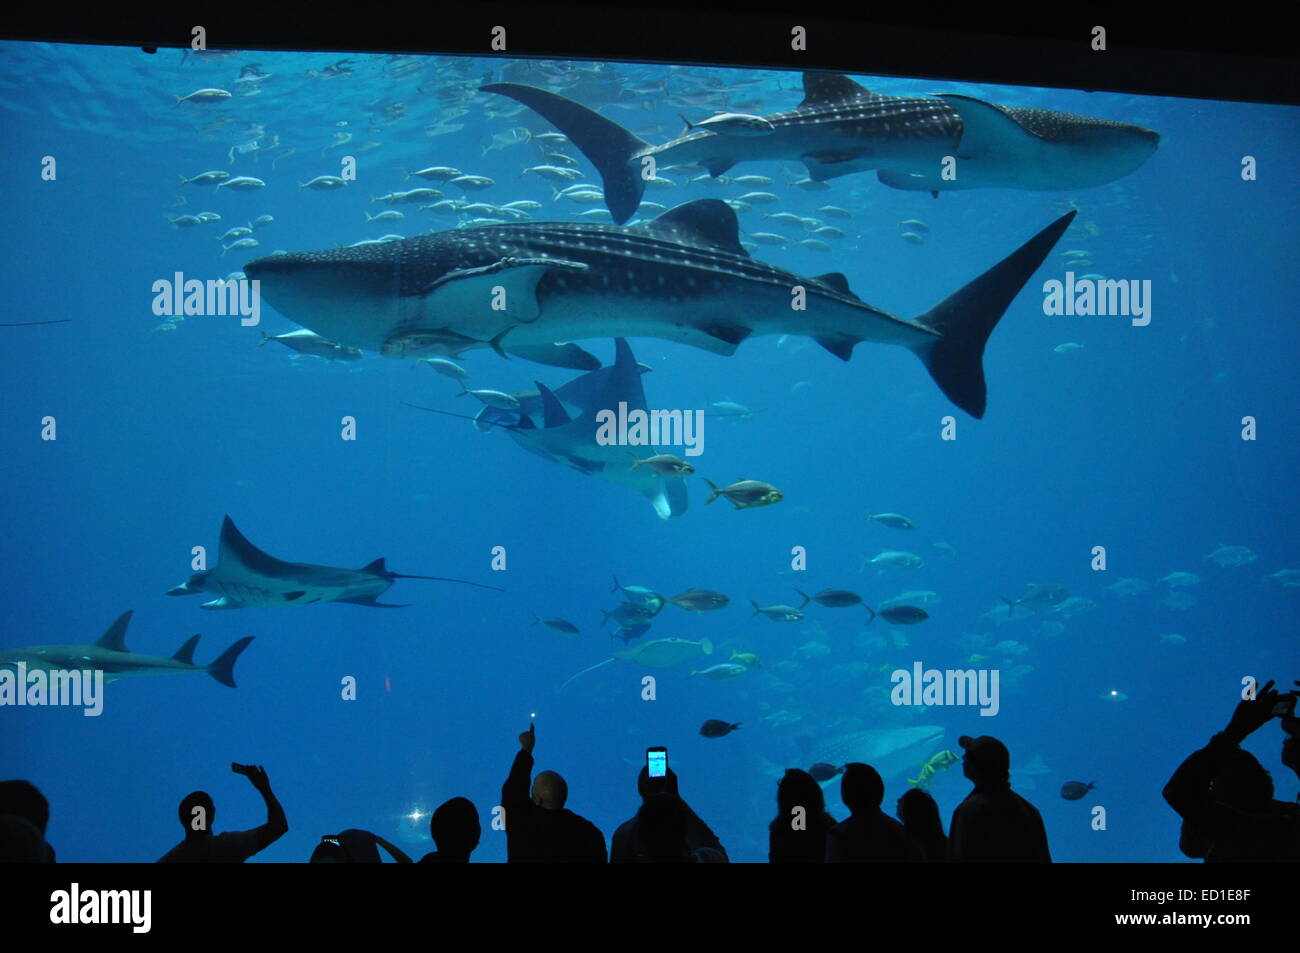 Sharks, stingrays and fish swimming in the world's largest aquarium in Atlanta, Georgia - Stock Image